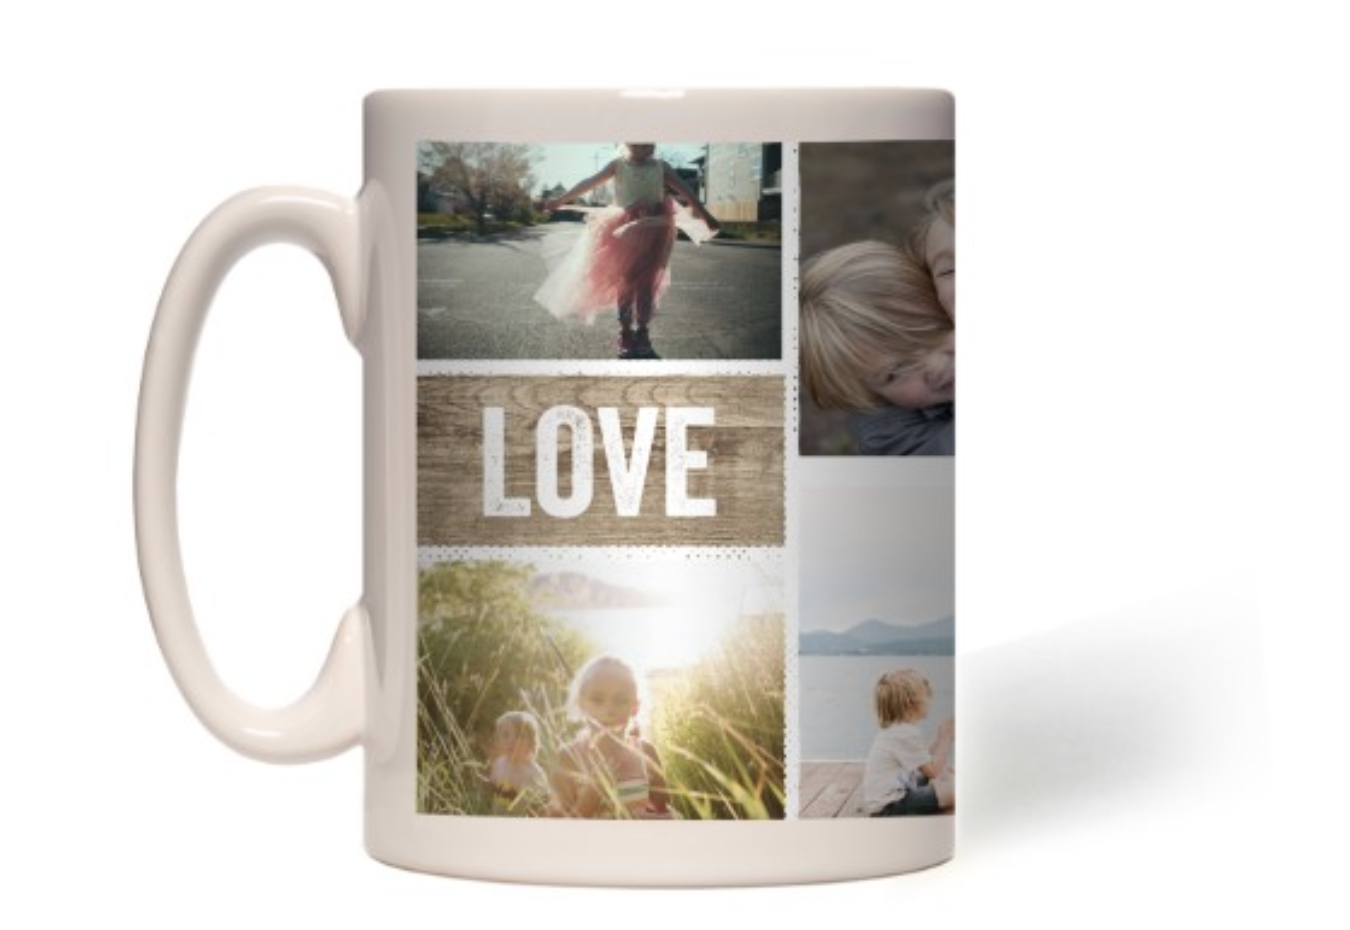 A white mug with a collage of photos on it